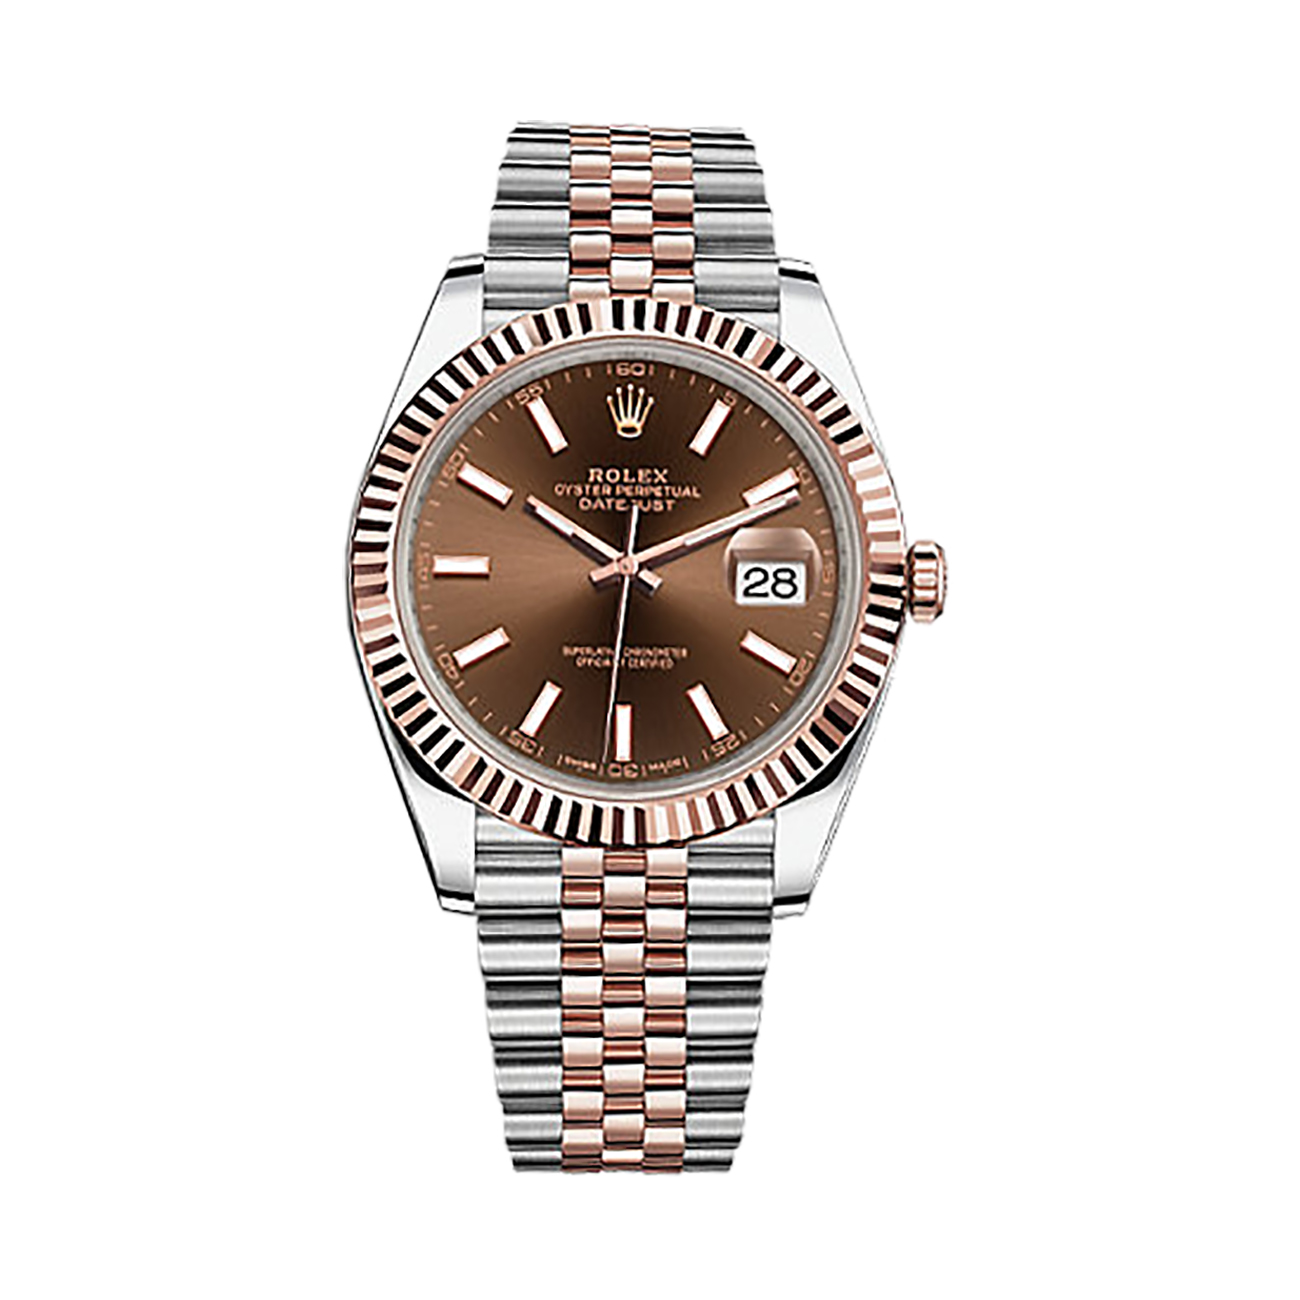 Steel Rolex Rolex Datejust 41 126331 Rose Gold Stainless Steel Watch Chocolate